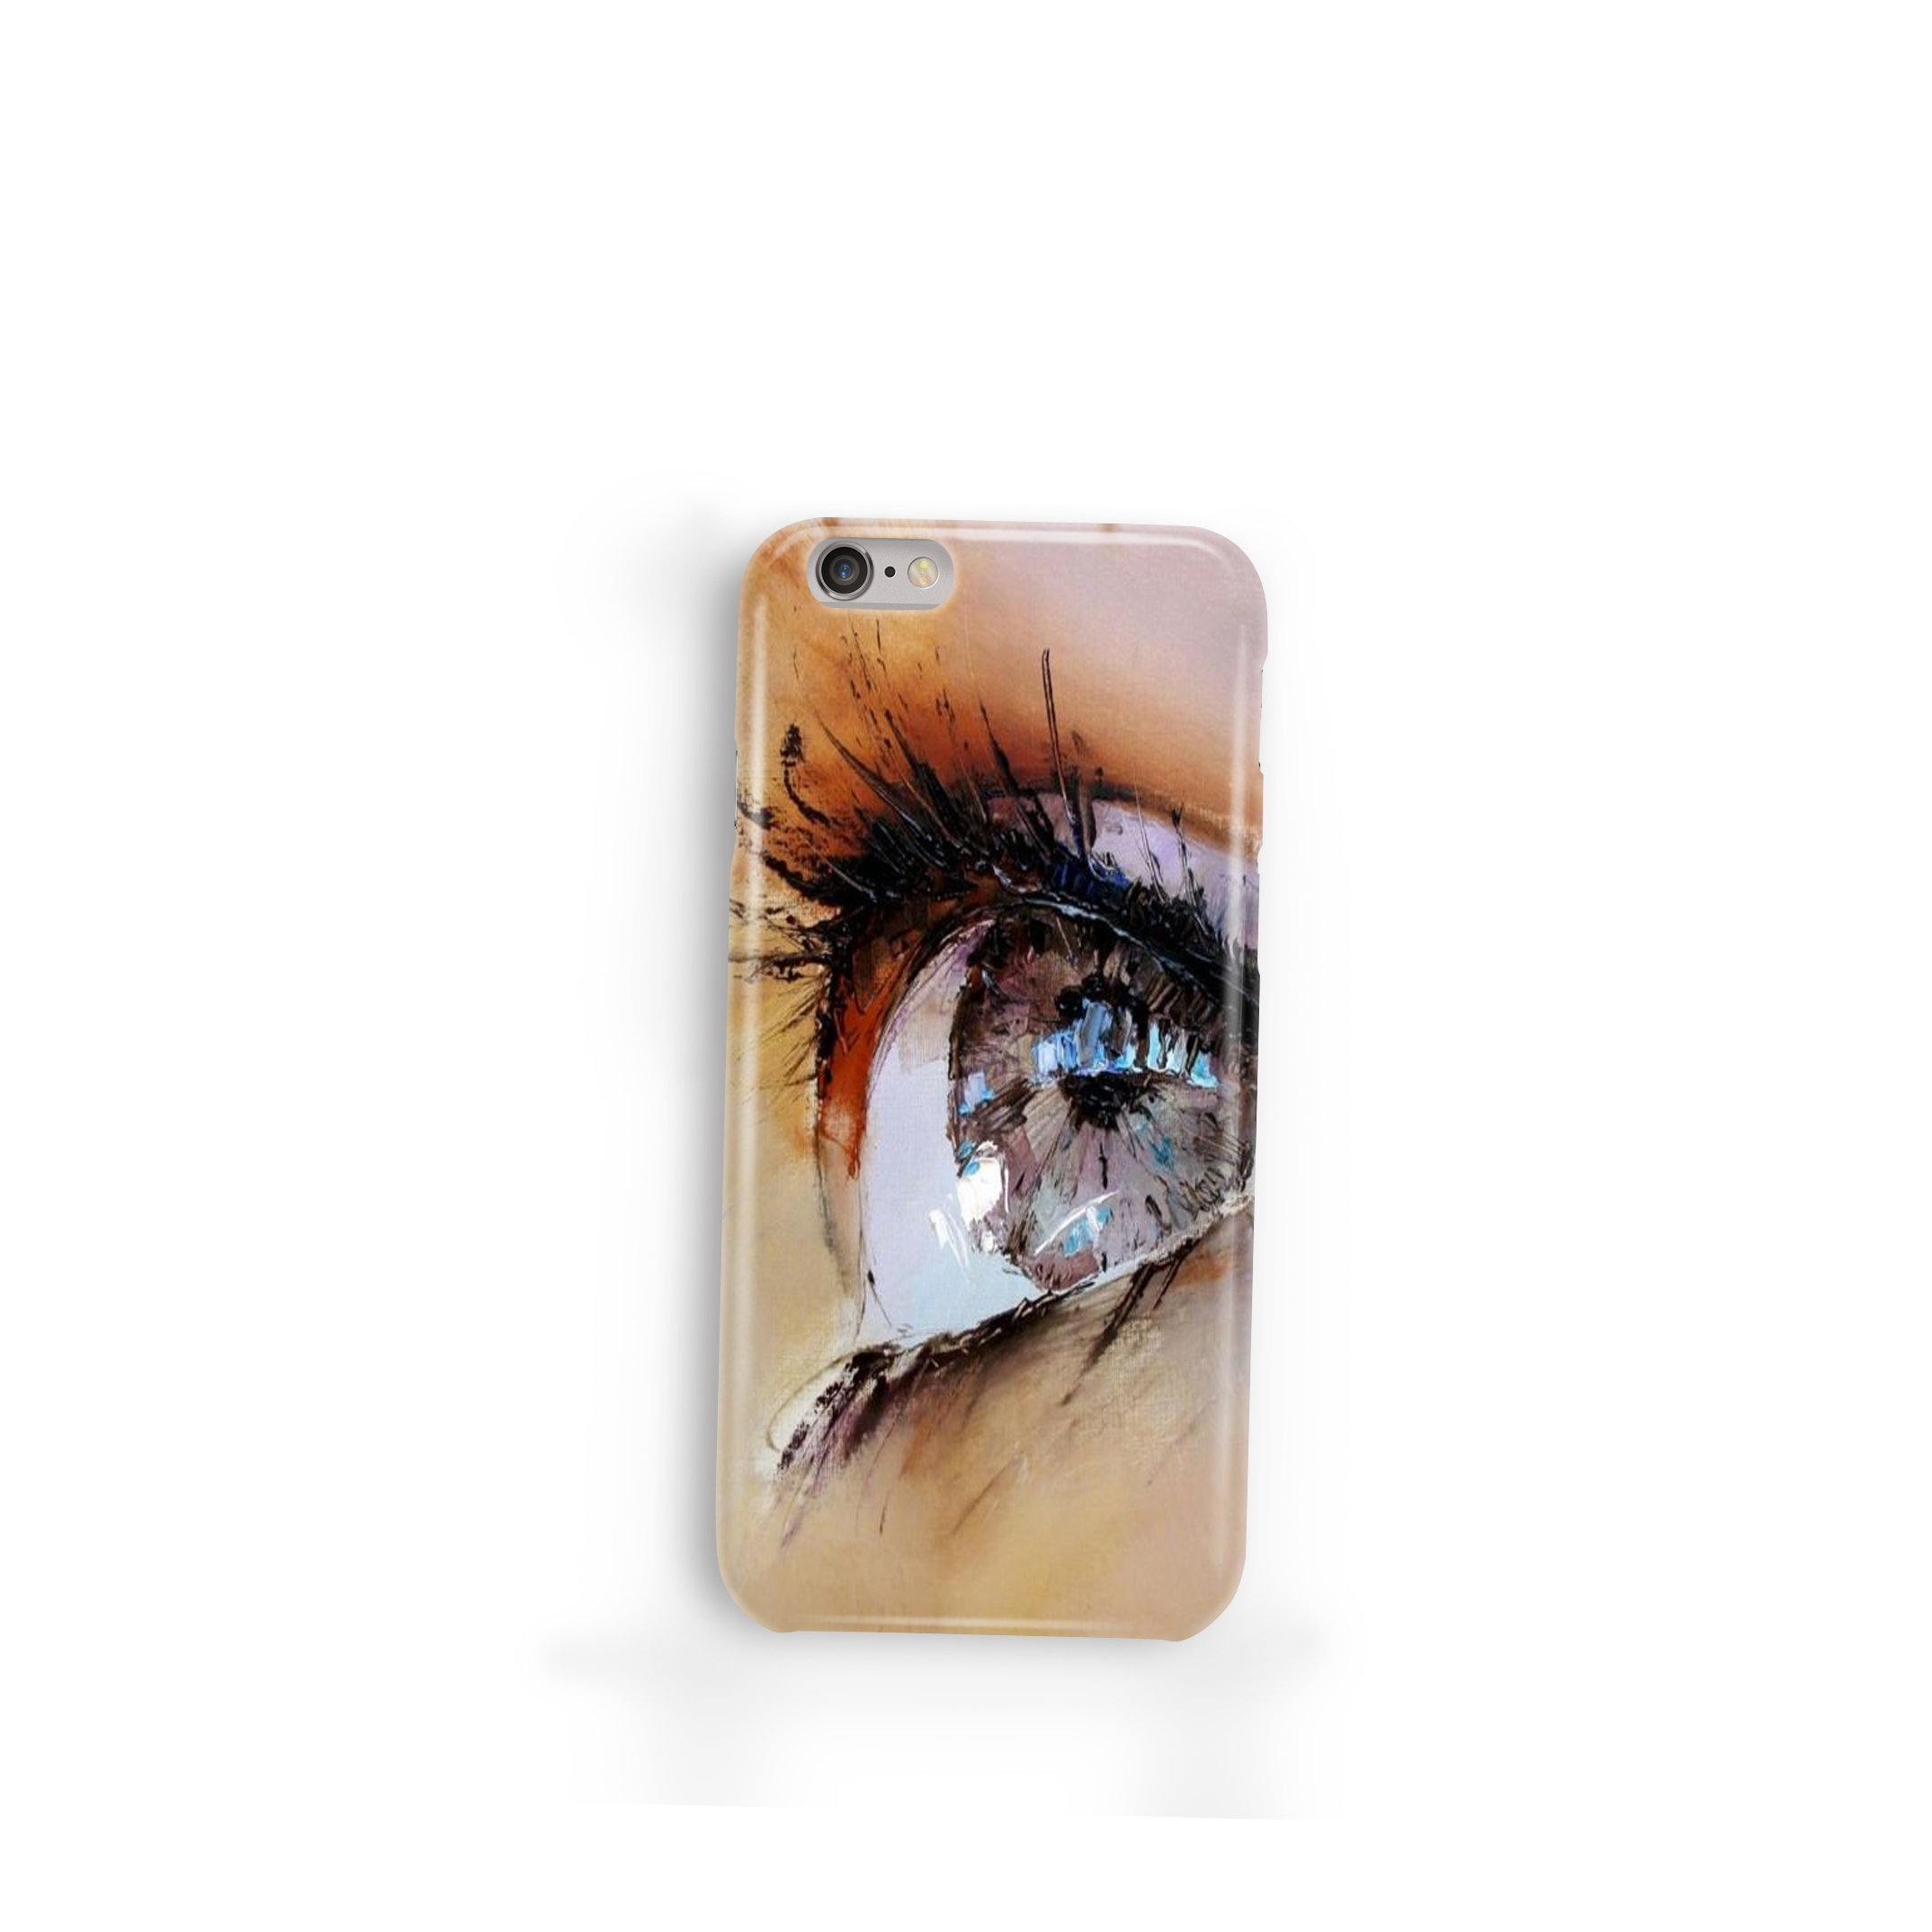 Vision Silicon Customized Mobile Phone Cover